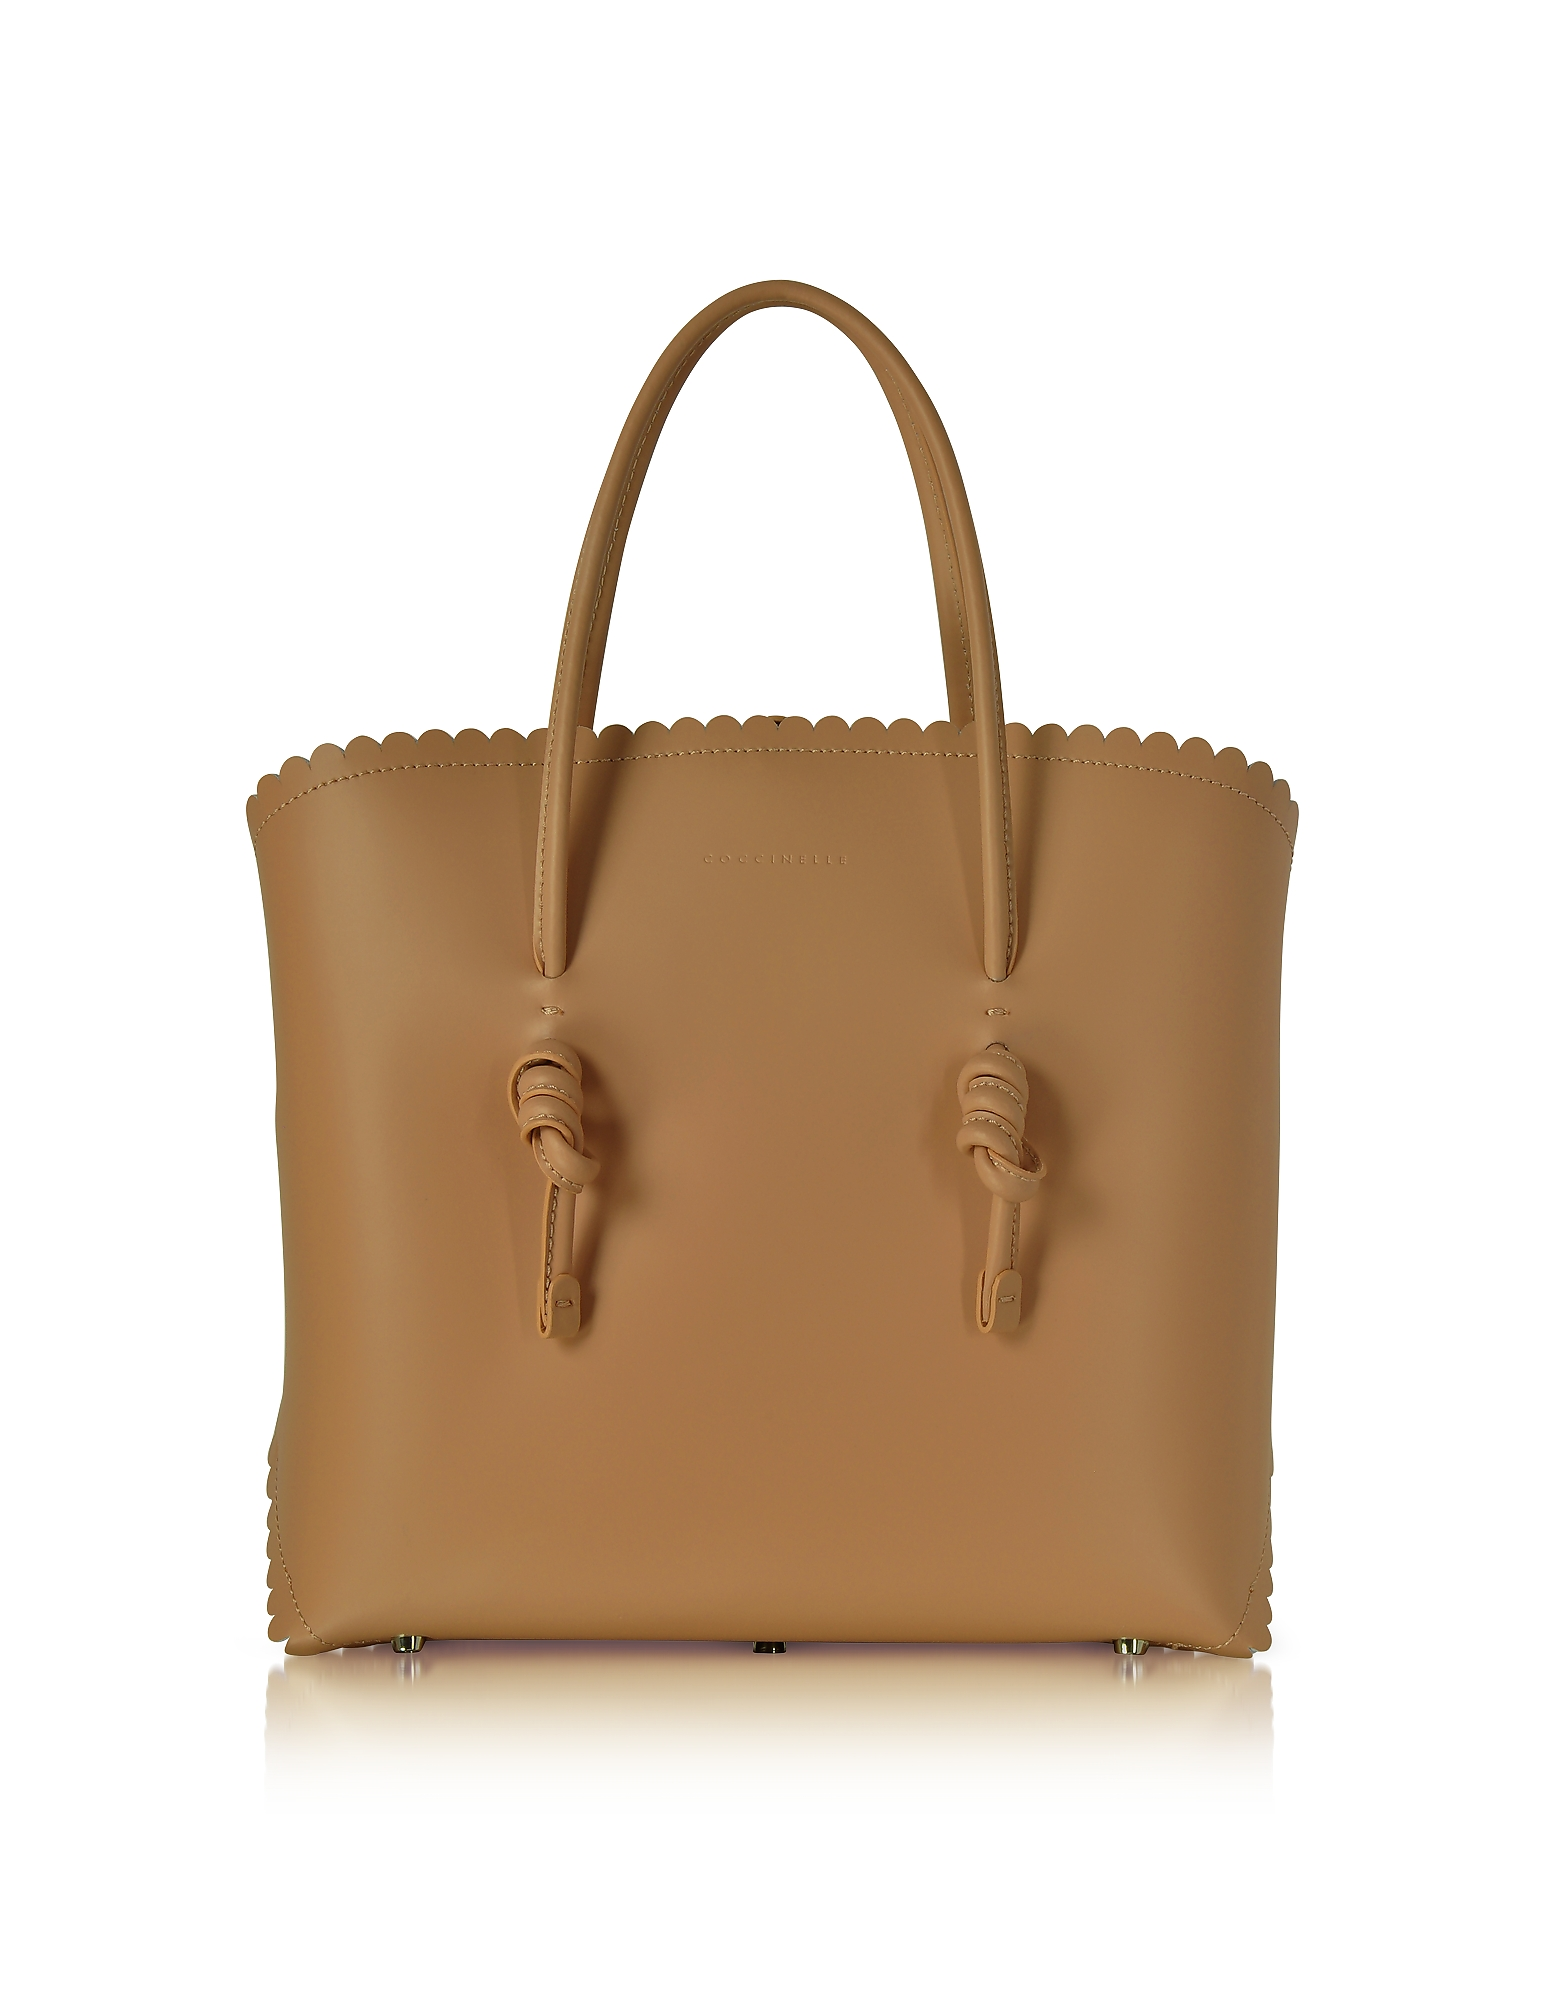 Coccinelle Handbags, Matilde Leather Medium Tote